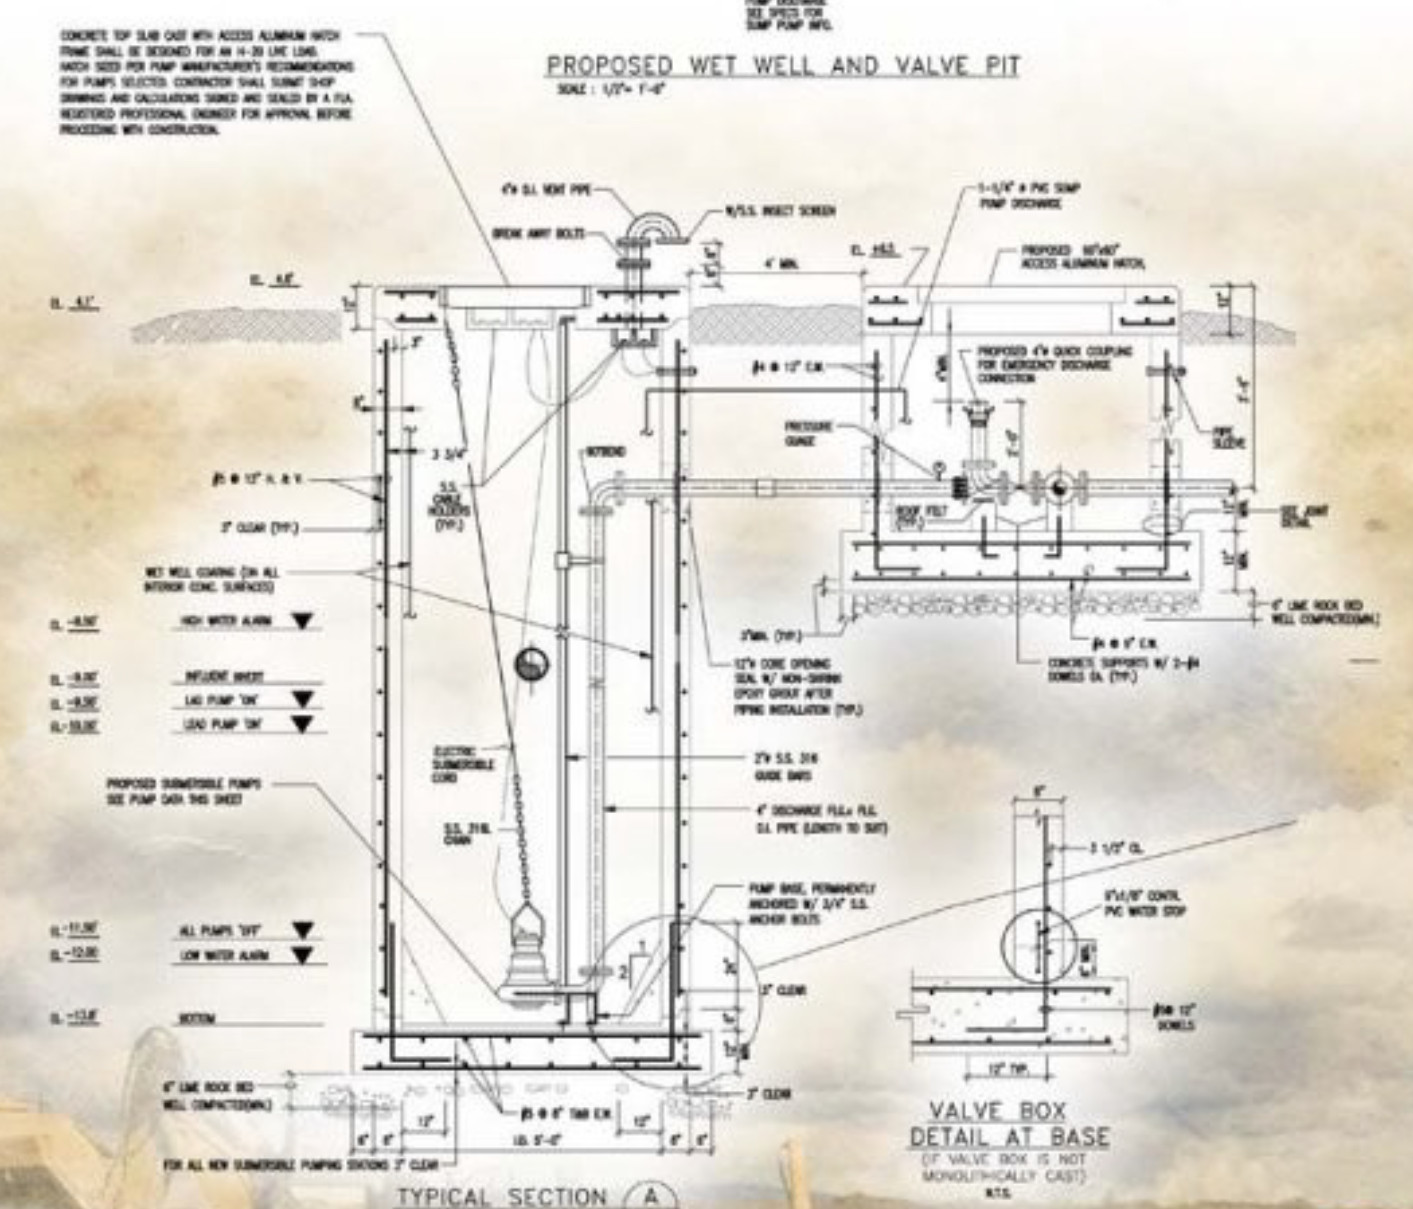 Well Schematic Diagram Miami Dade on